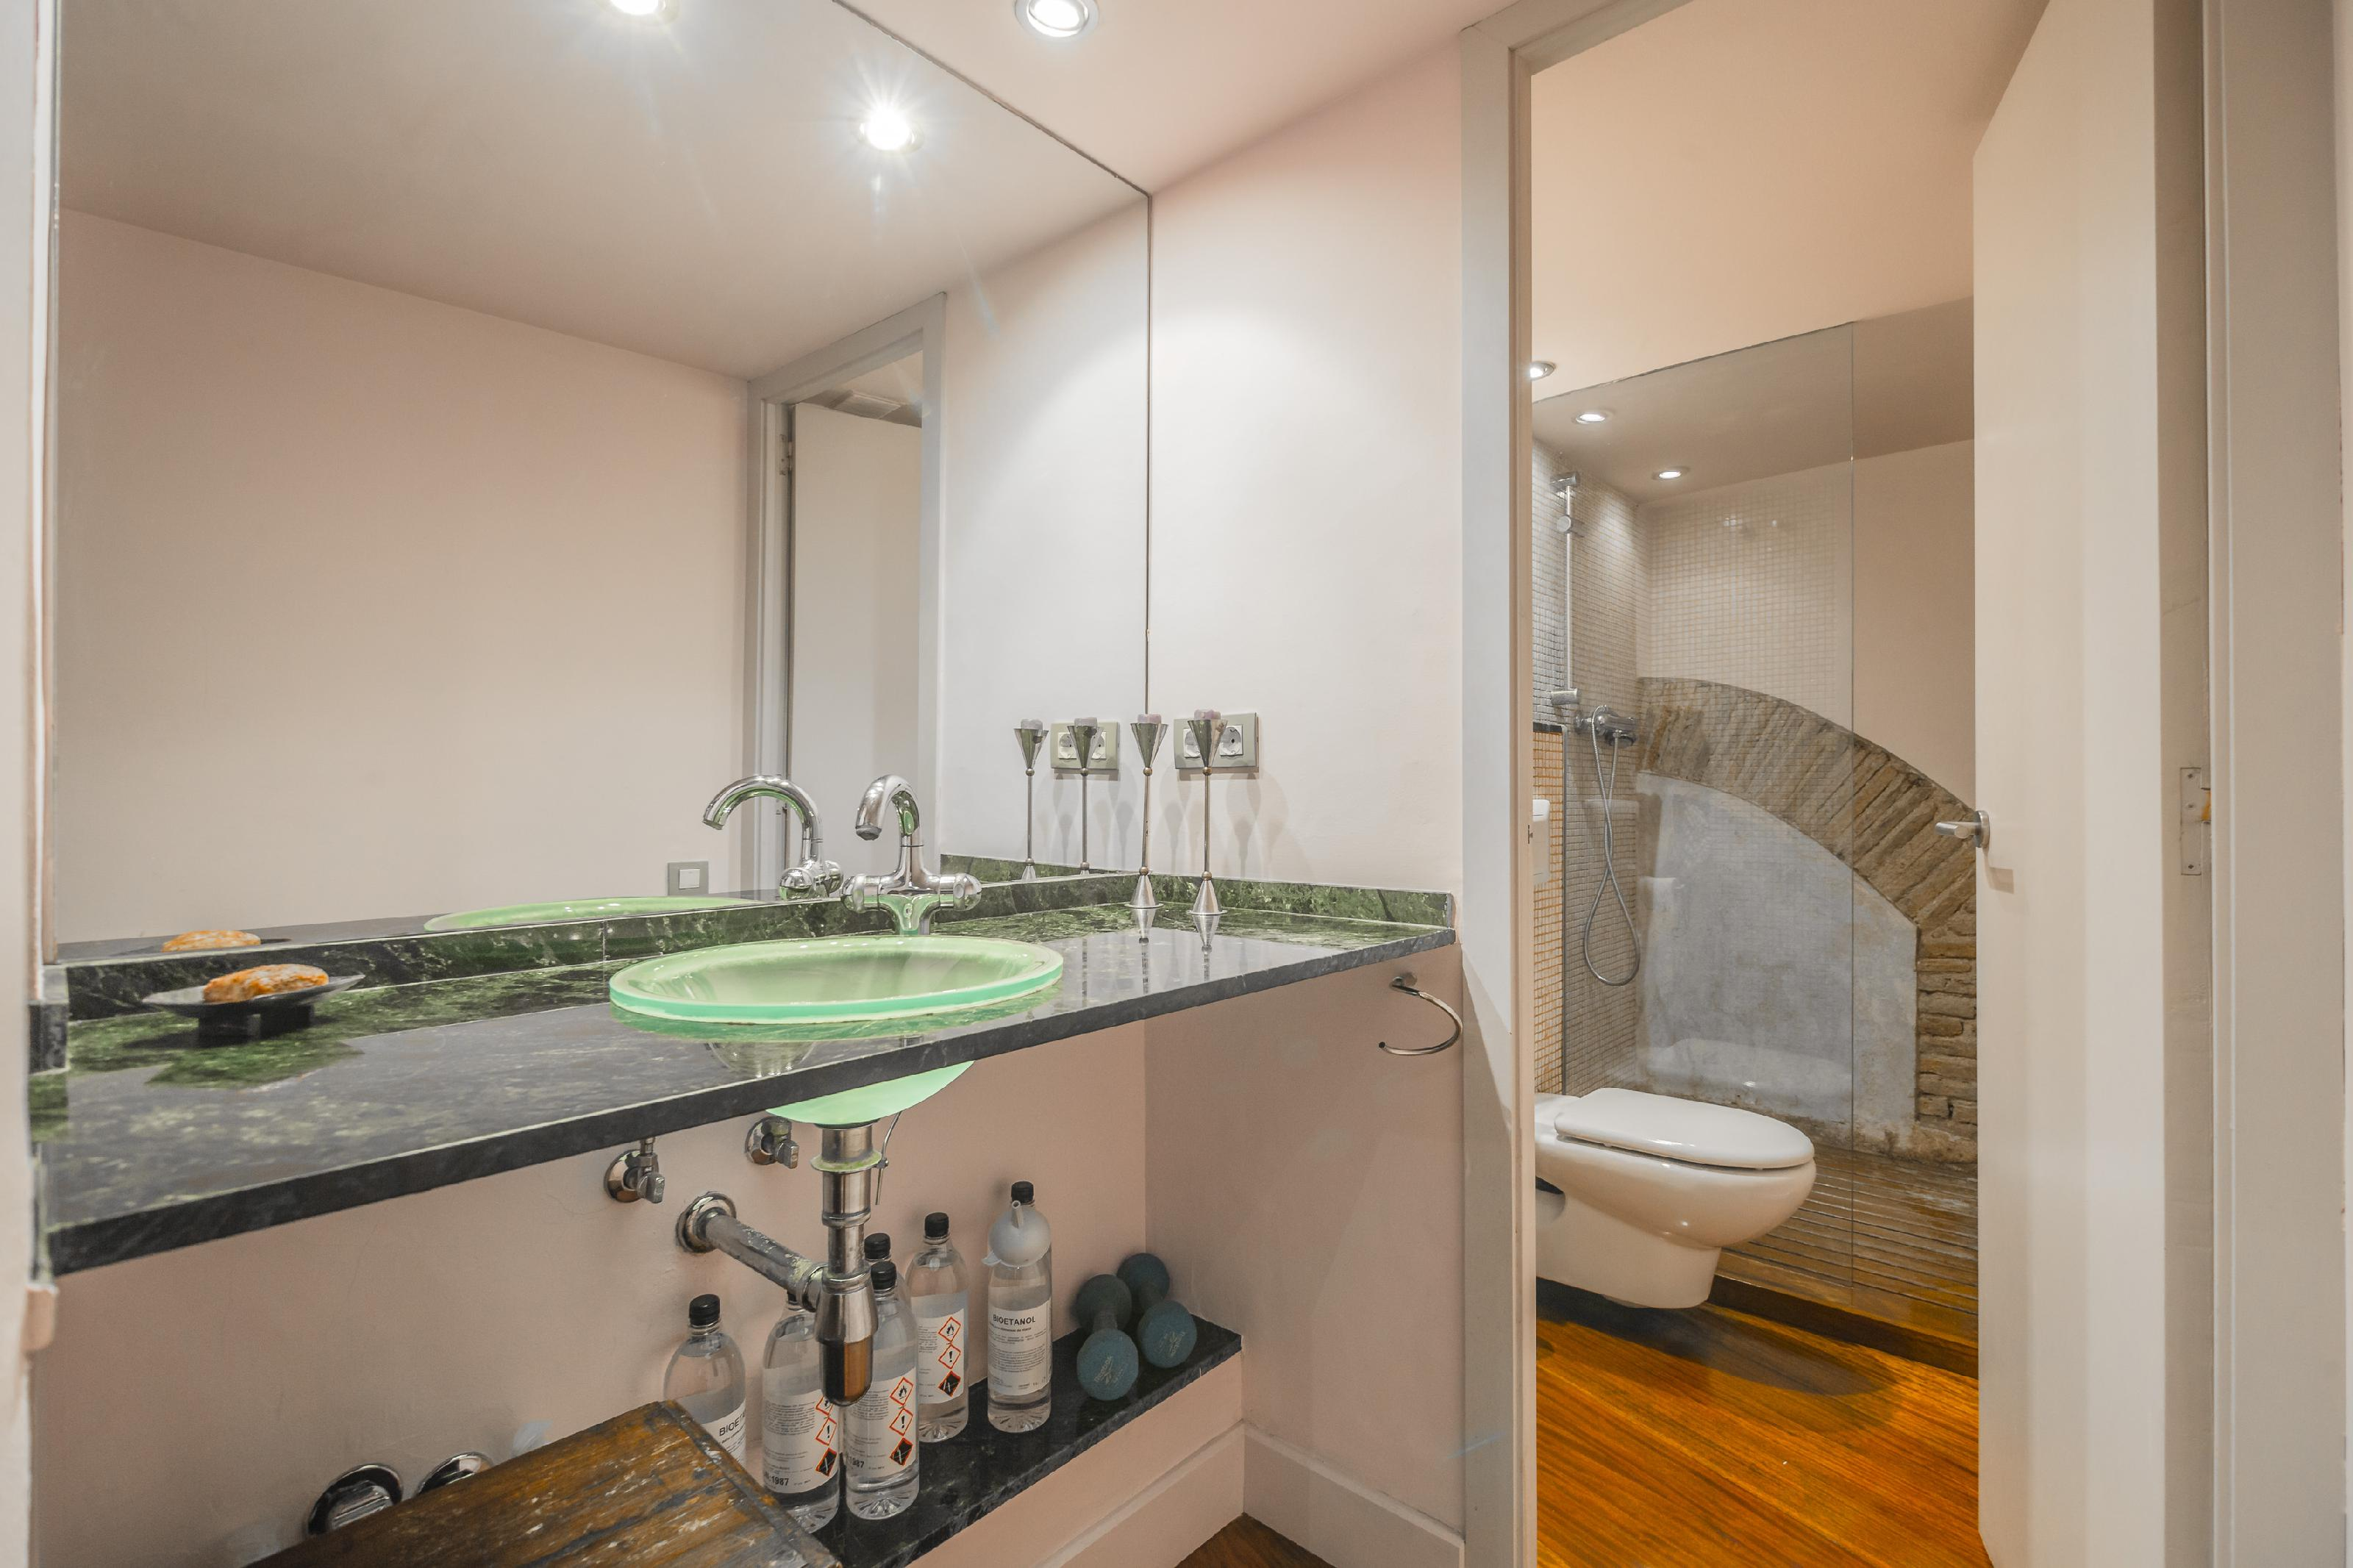 241111 Flat for sale in Ciutat Vella, Barri Gótic 26